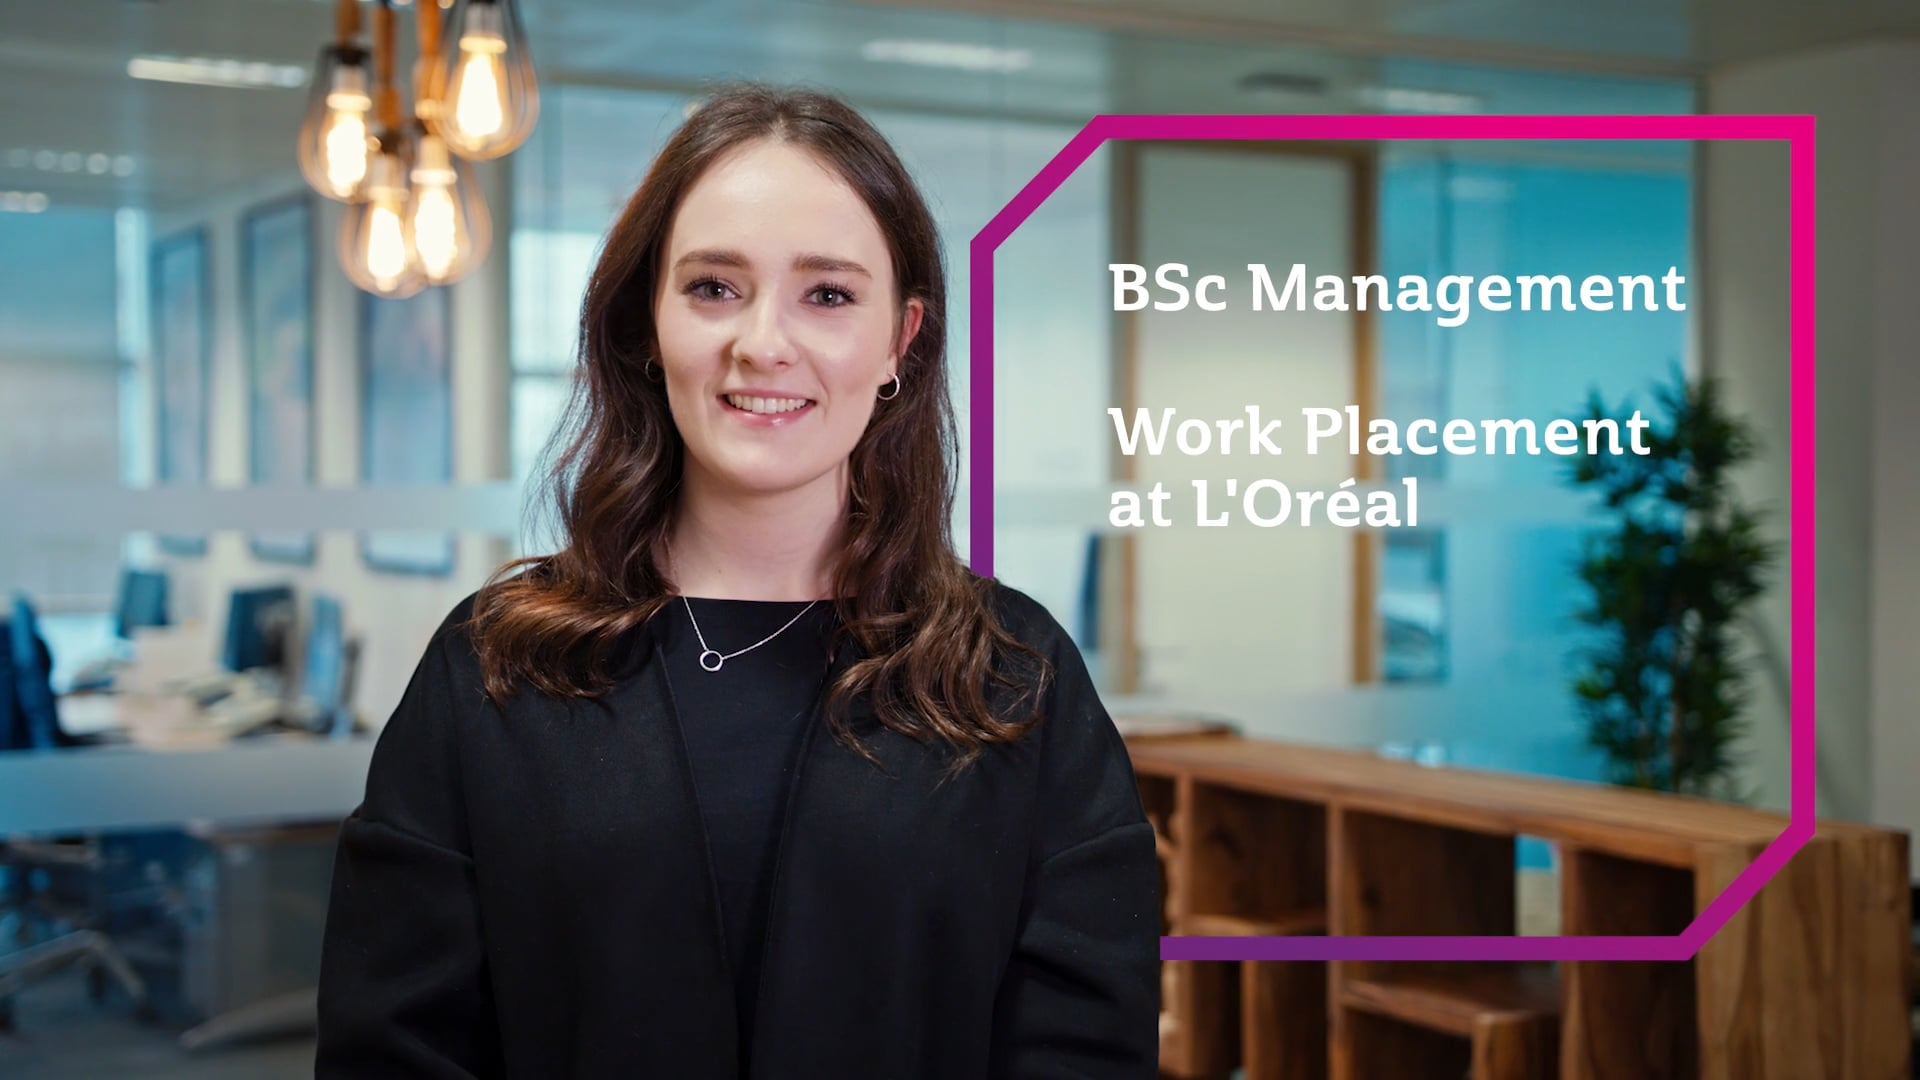 Why I did a placement year at L'Oreal